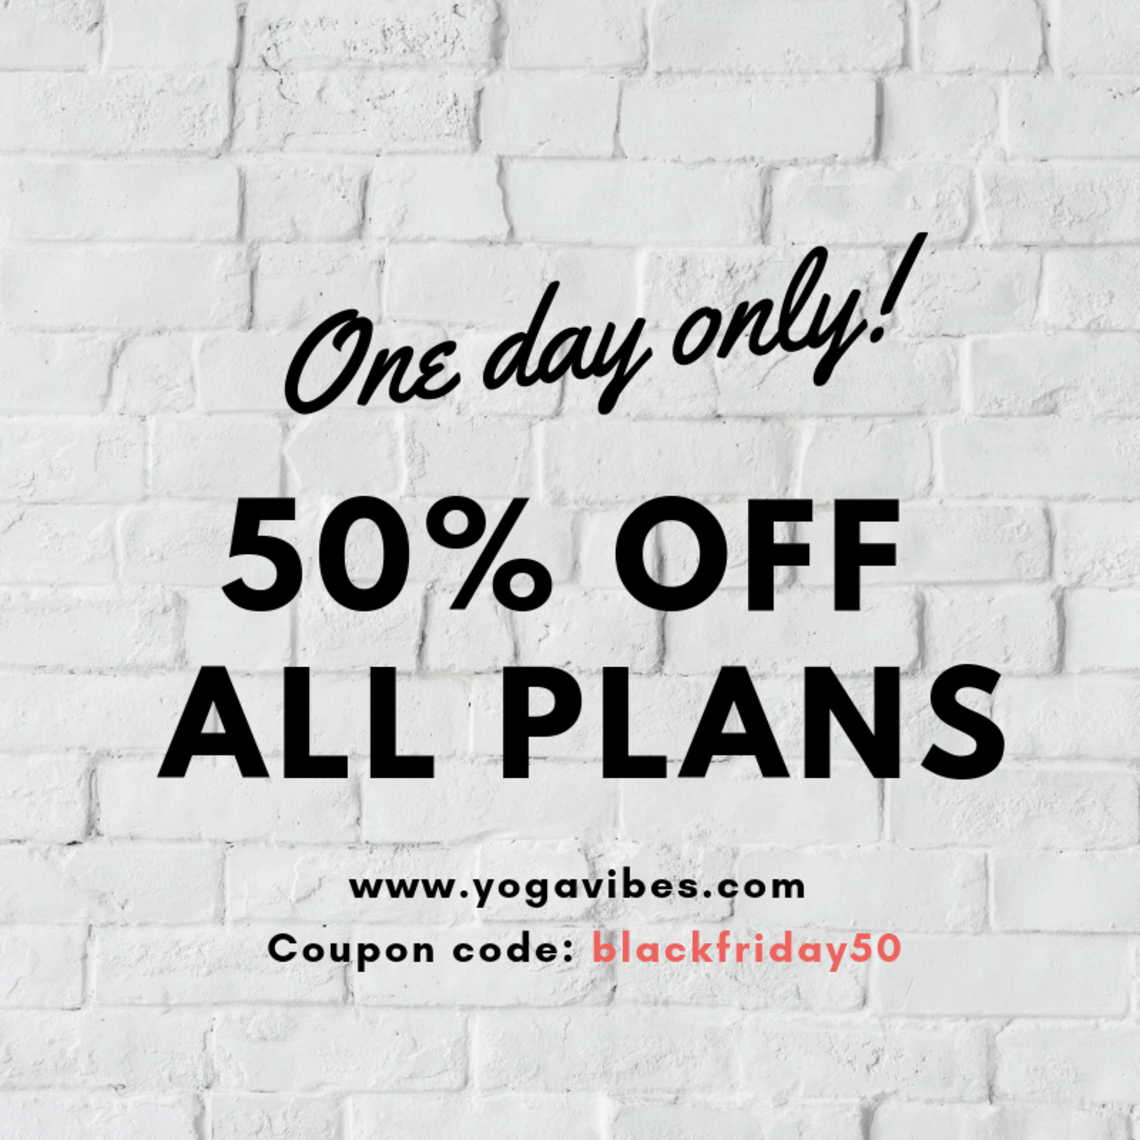 YogaVibes Black Friday 2018 Coupon: Get 50% Off On All Plans!